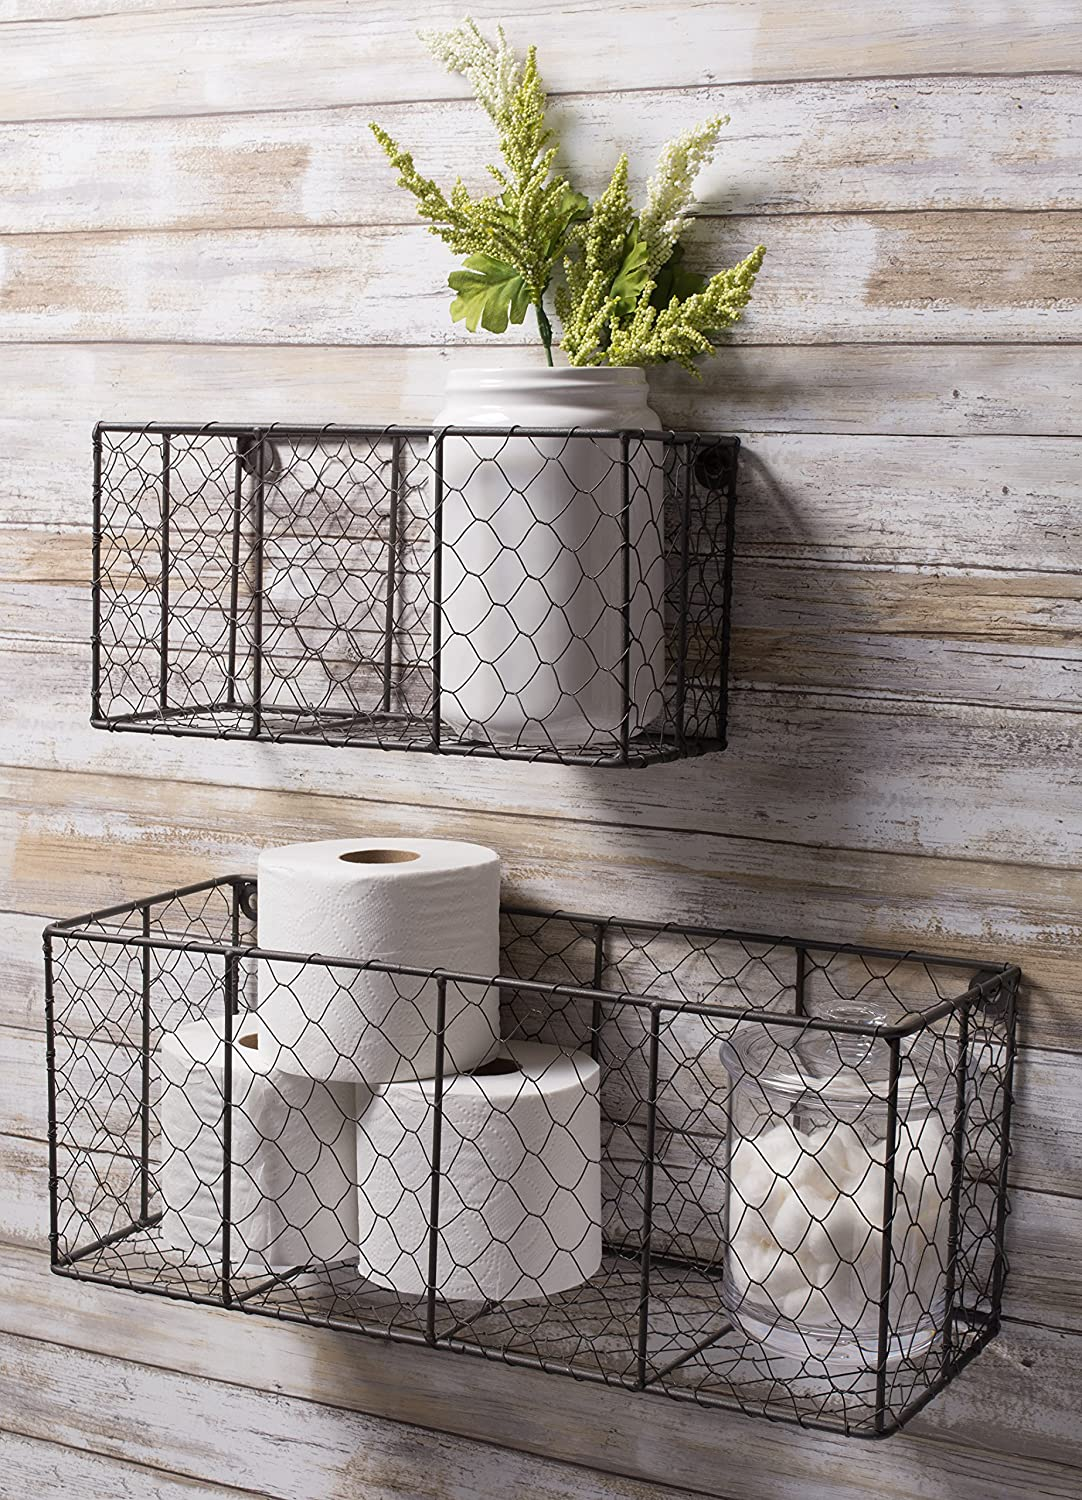 chicken wire farmhouse style baskets